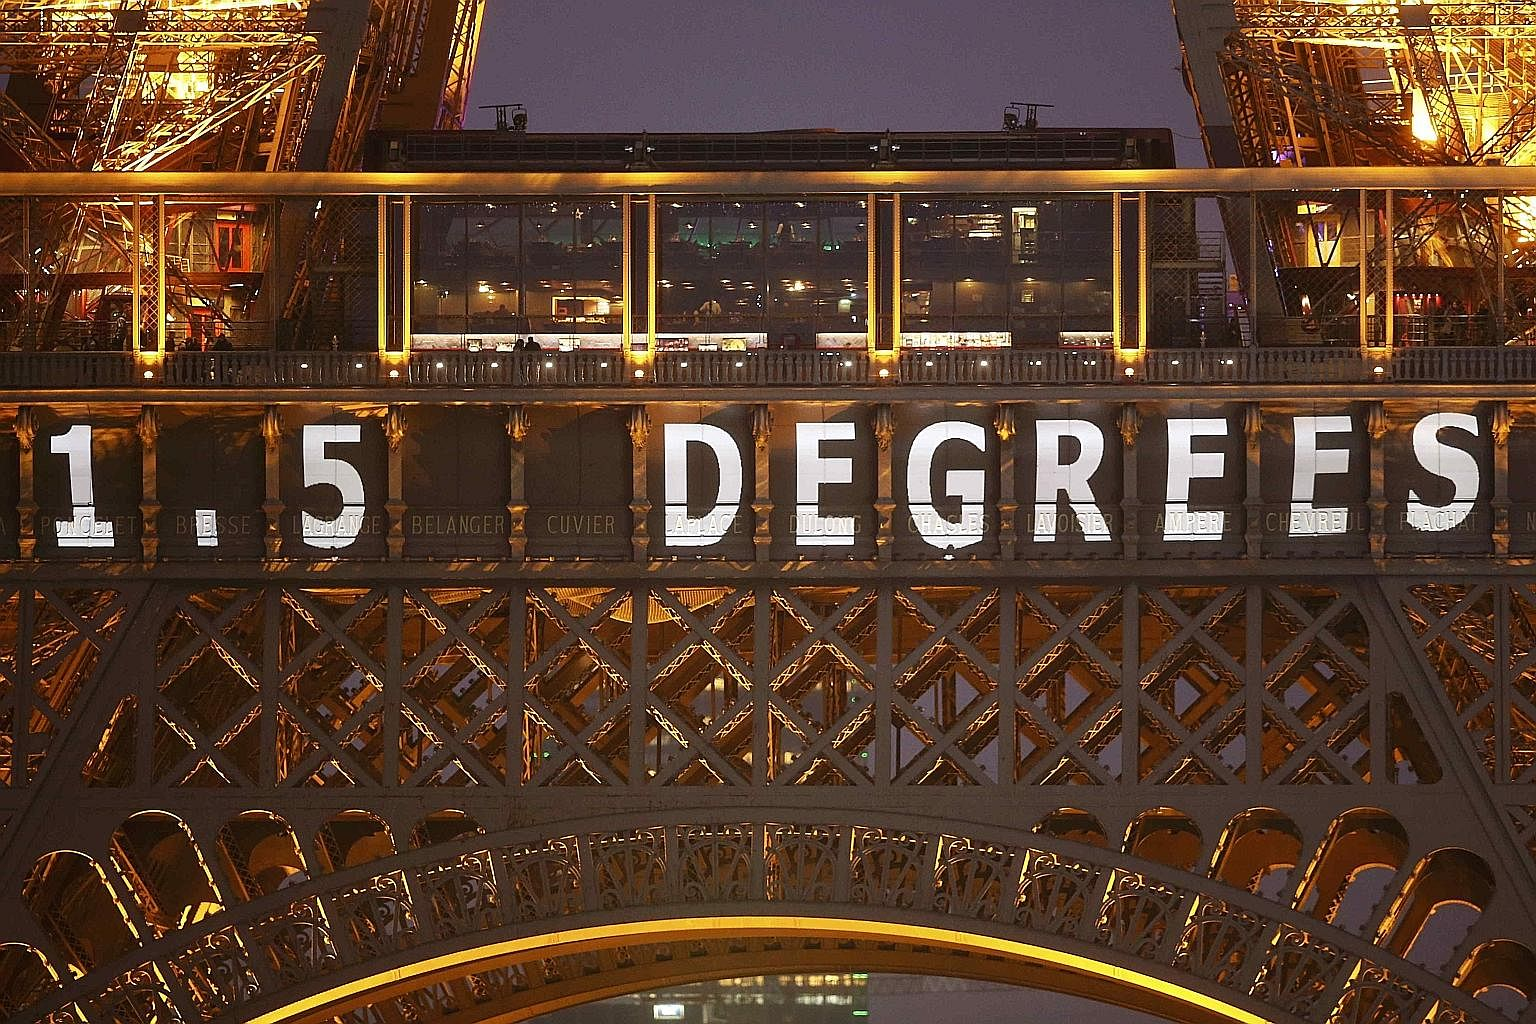 """The climate deal target of """"1.5 degrees"""" is projected on the Eiffel Tower. It refers to the aim of all participating nations to pursue efforts to limit global temperature increase to 1.5 deg C above pre-industrial levels."""